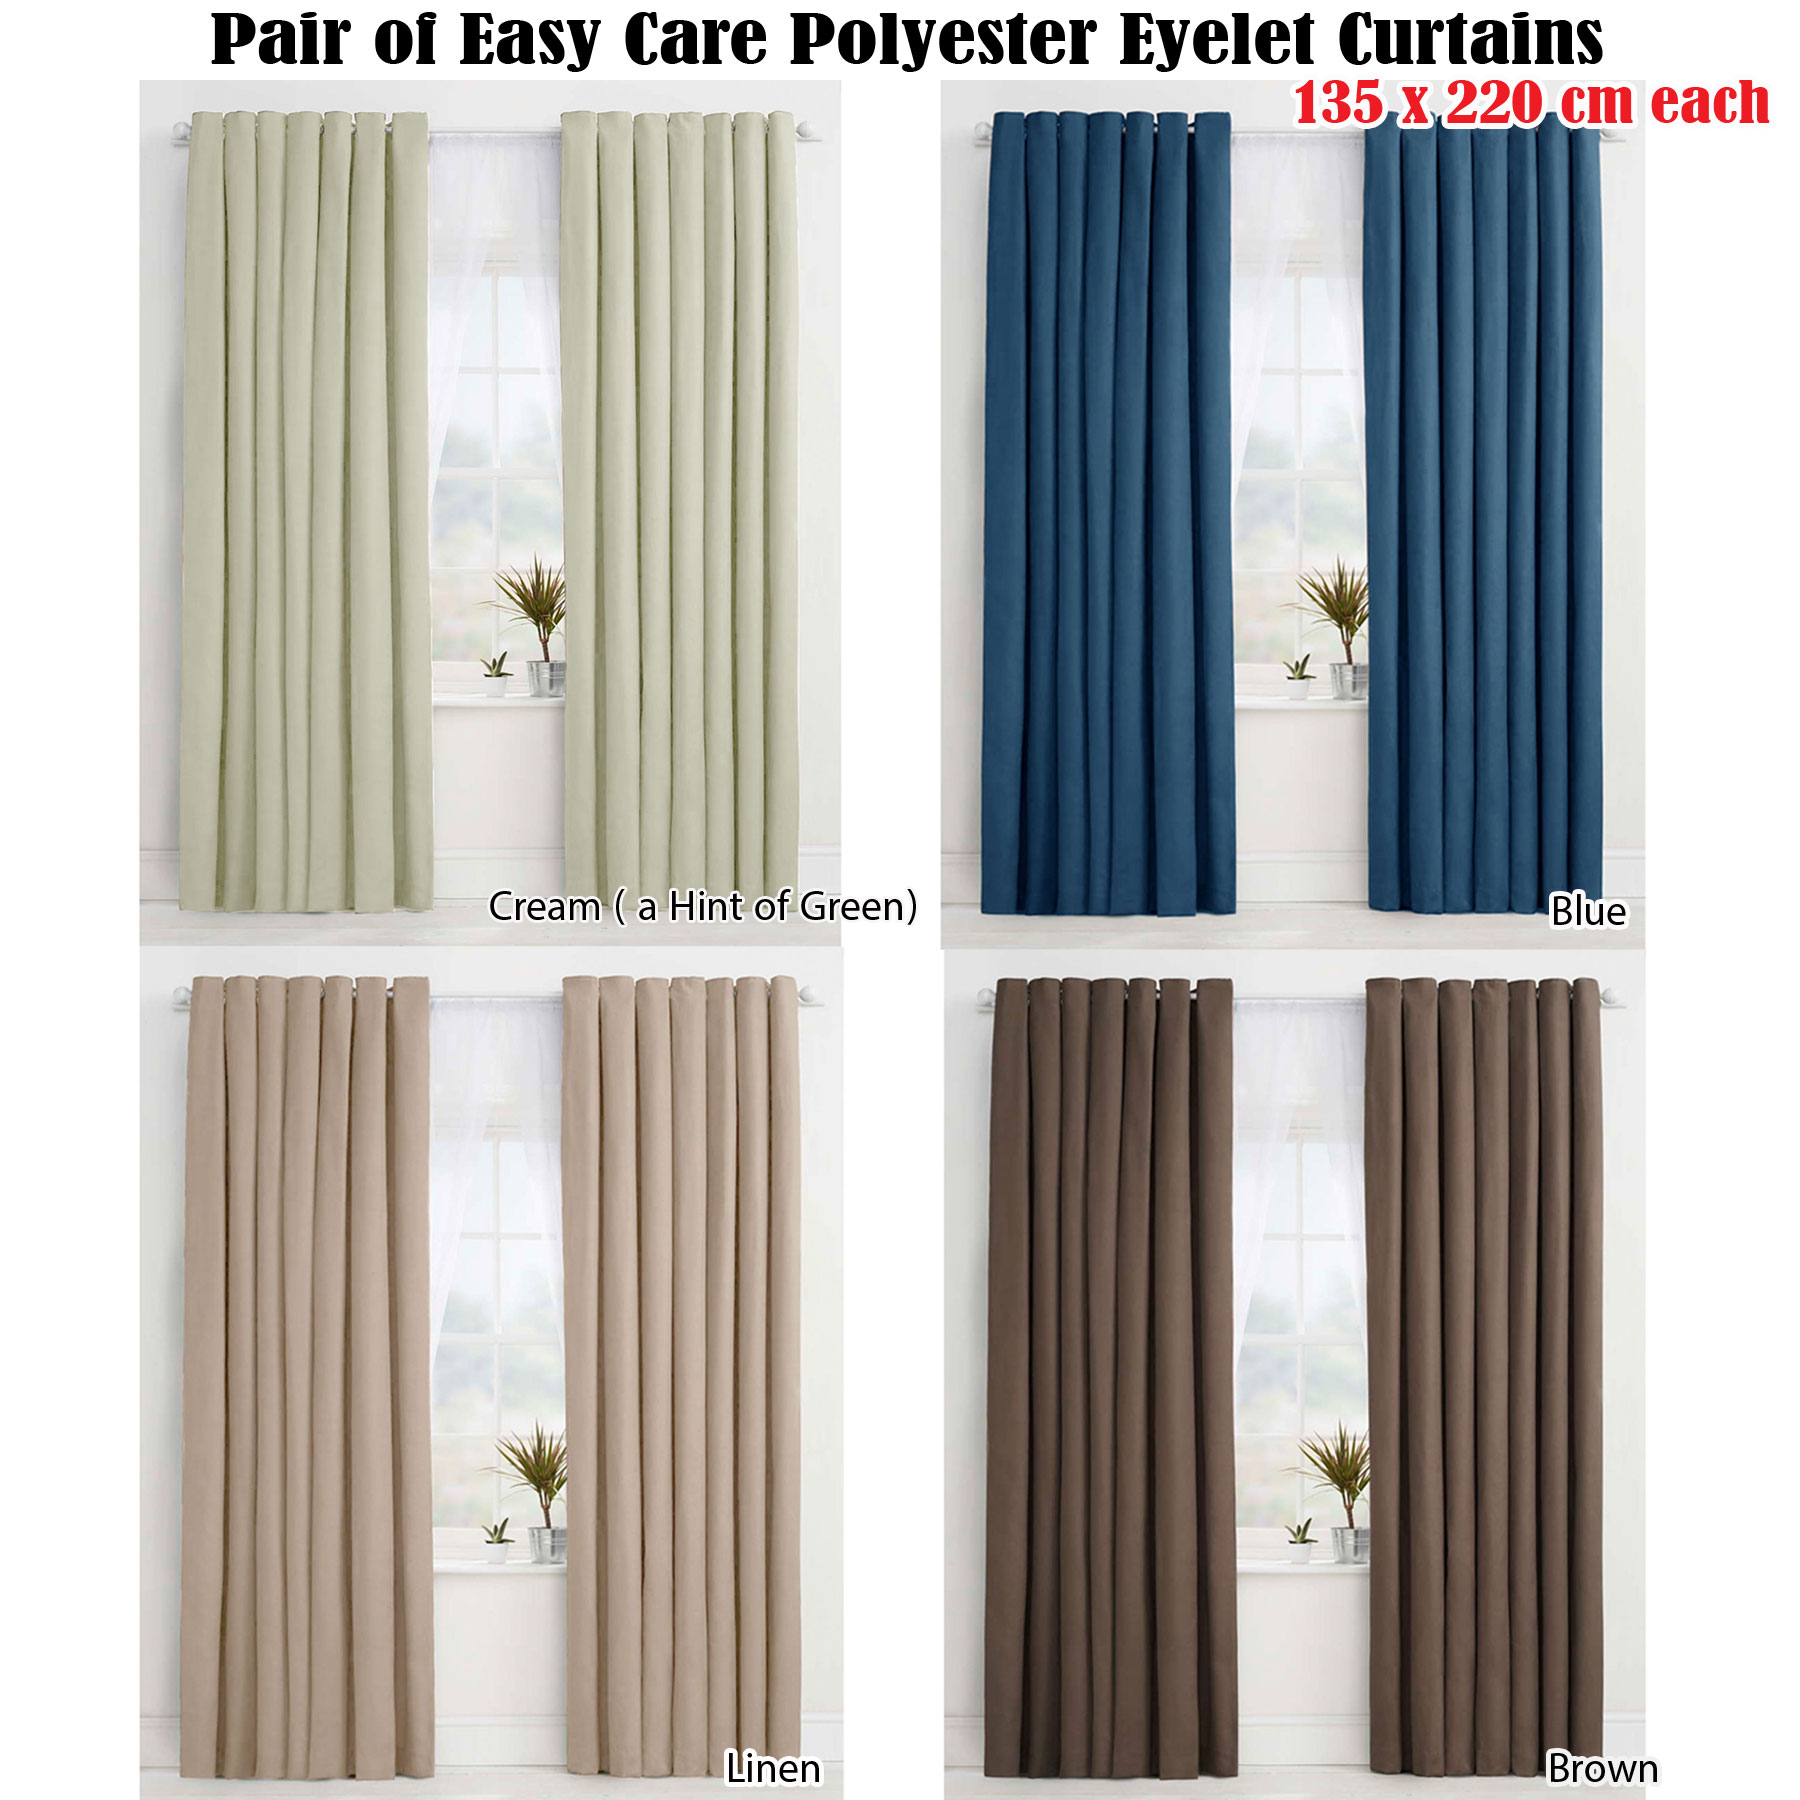 Details About Pair 2 Panels Of Eyelet Curtains Choice Cream Blue Linen Brown